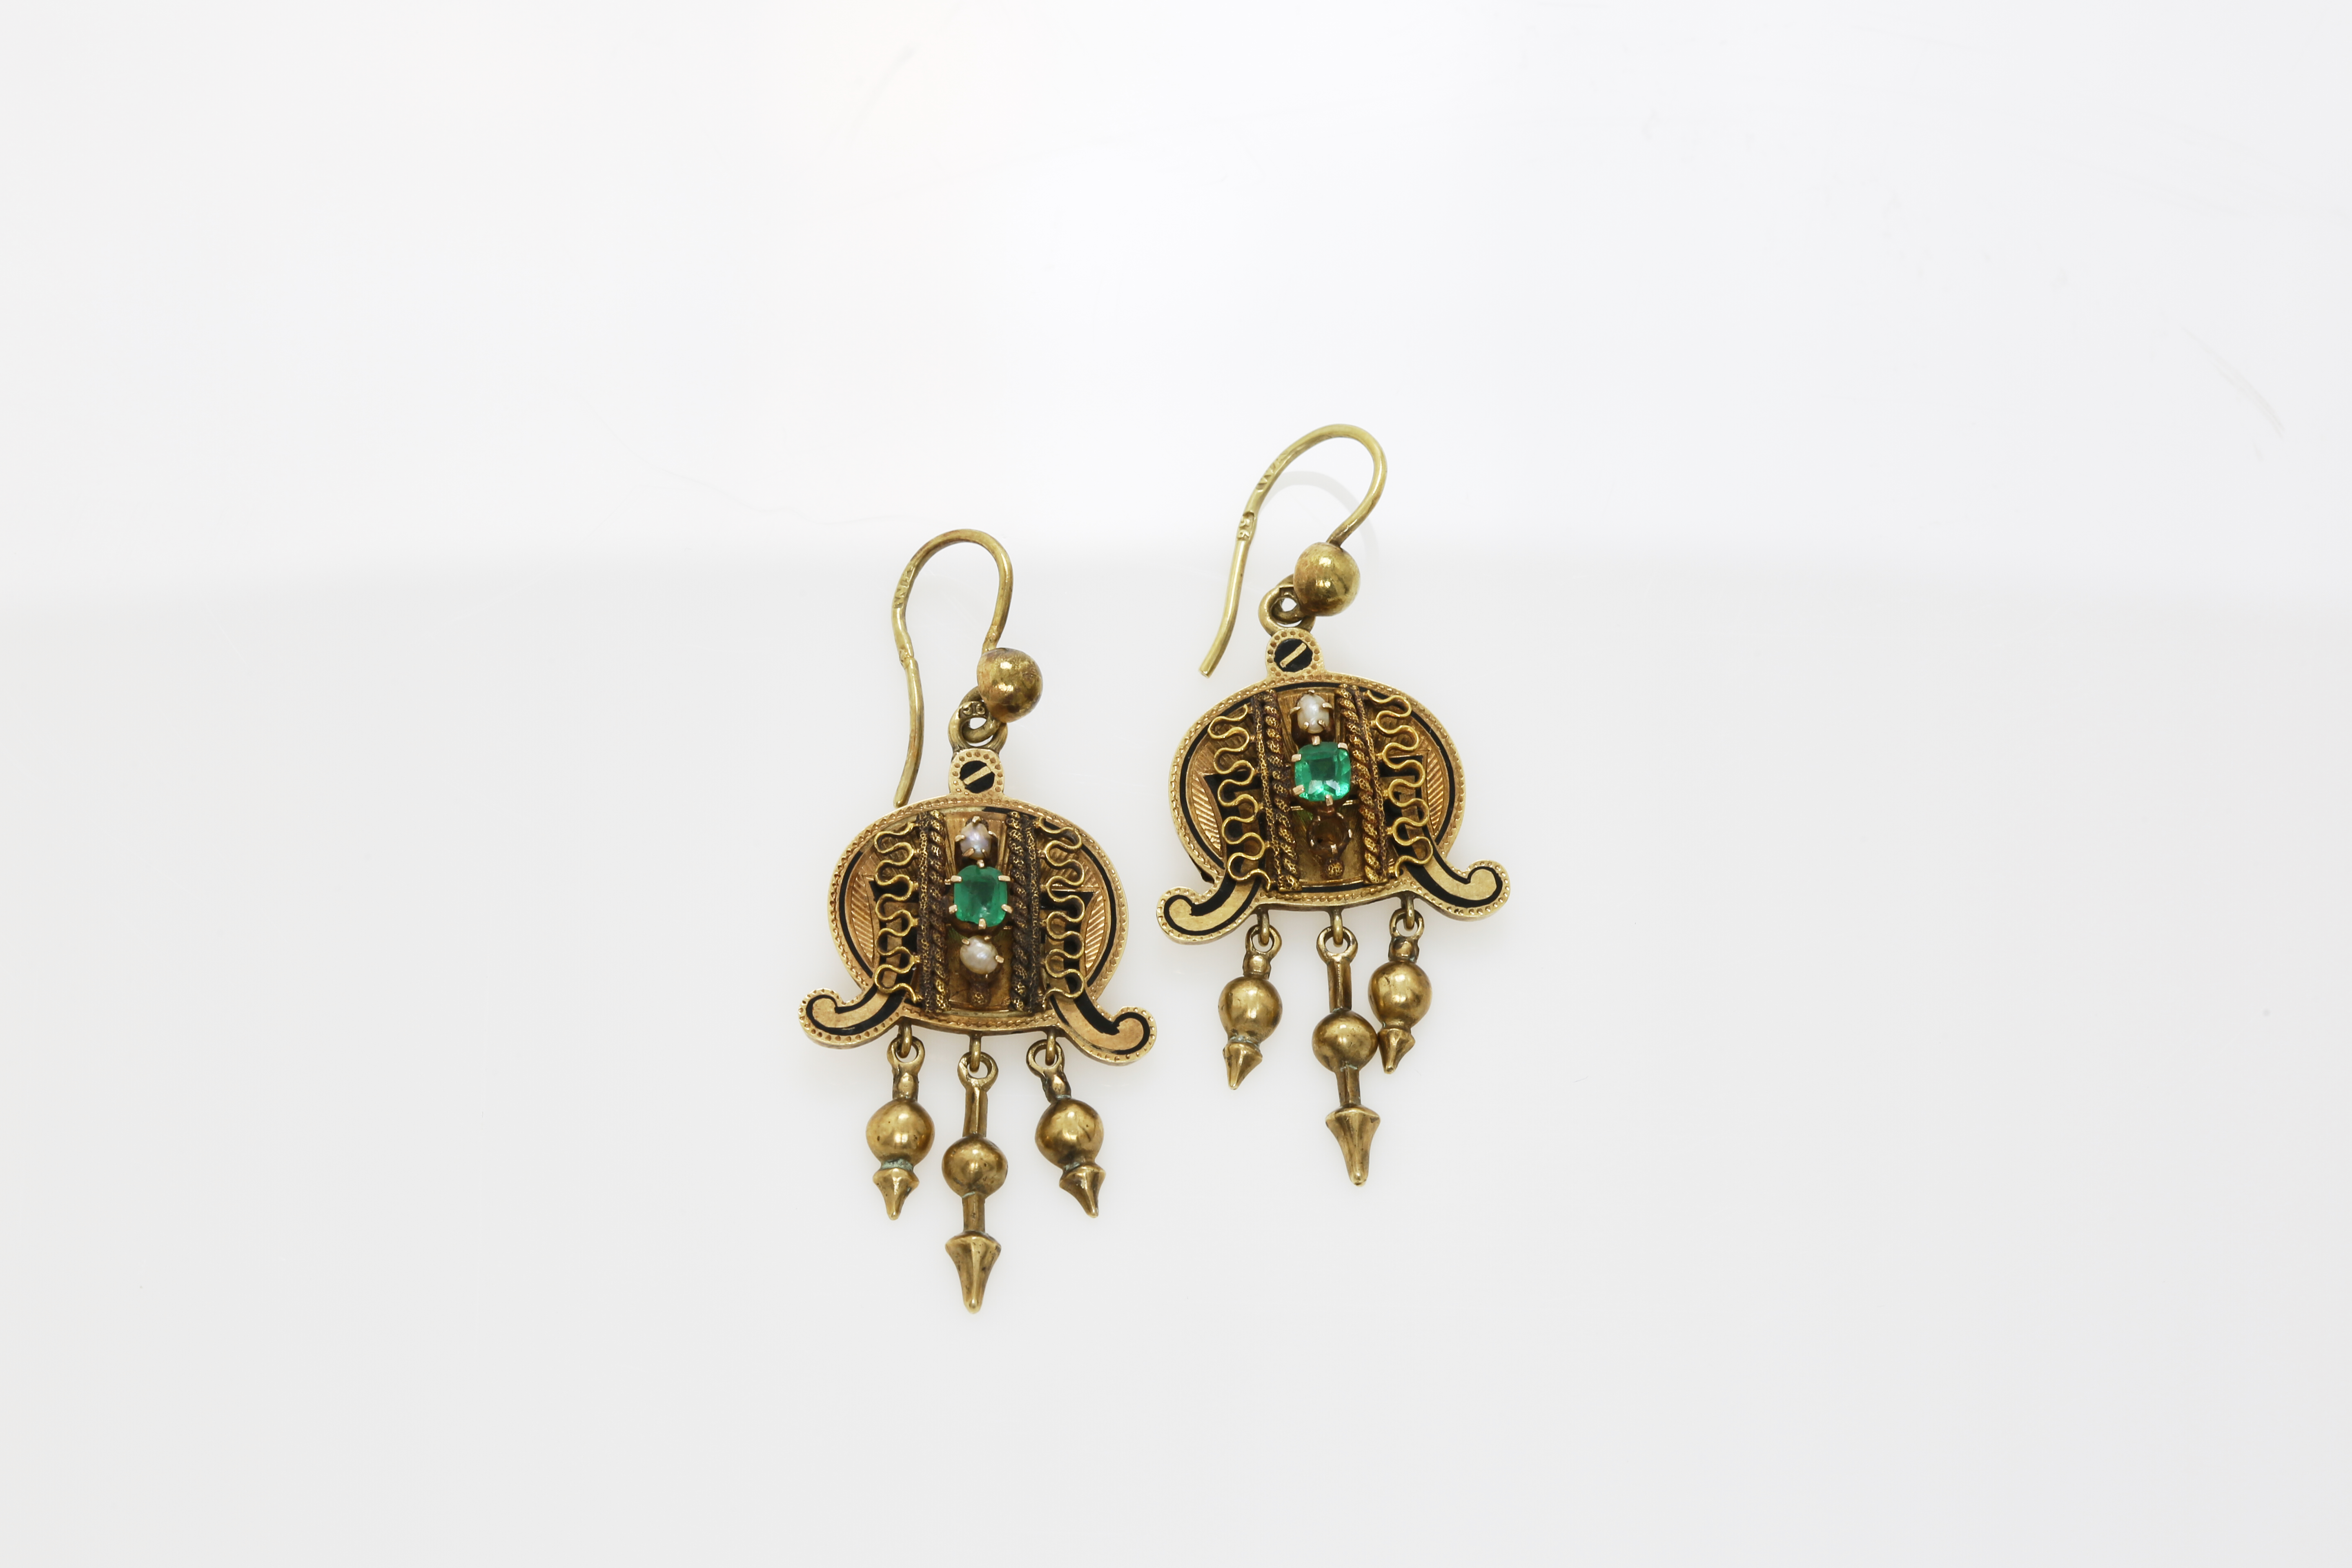 A pair of late 19th century Constantinople gold earrings. Approx: 10 gr - Image 2 of 2